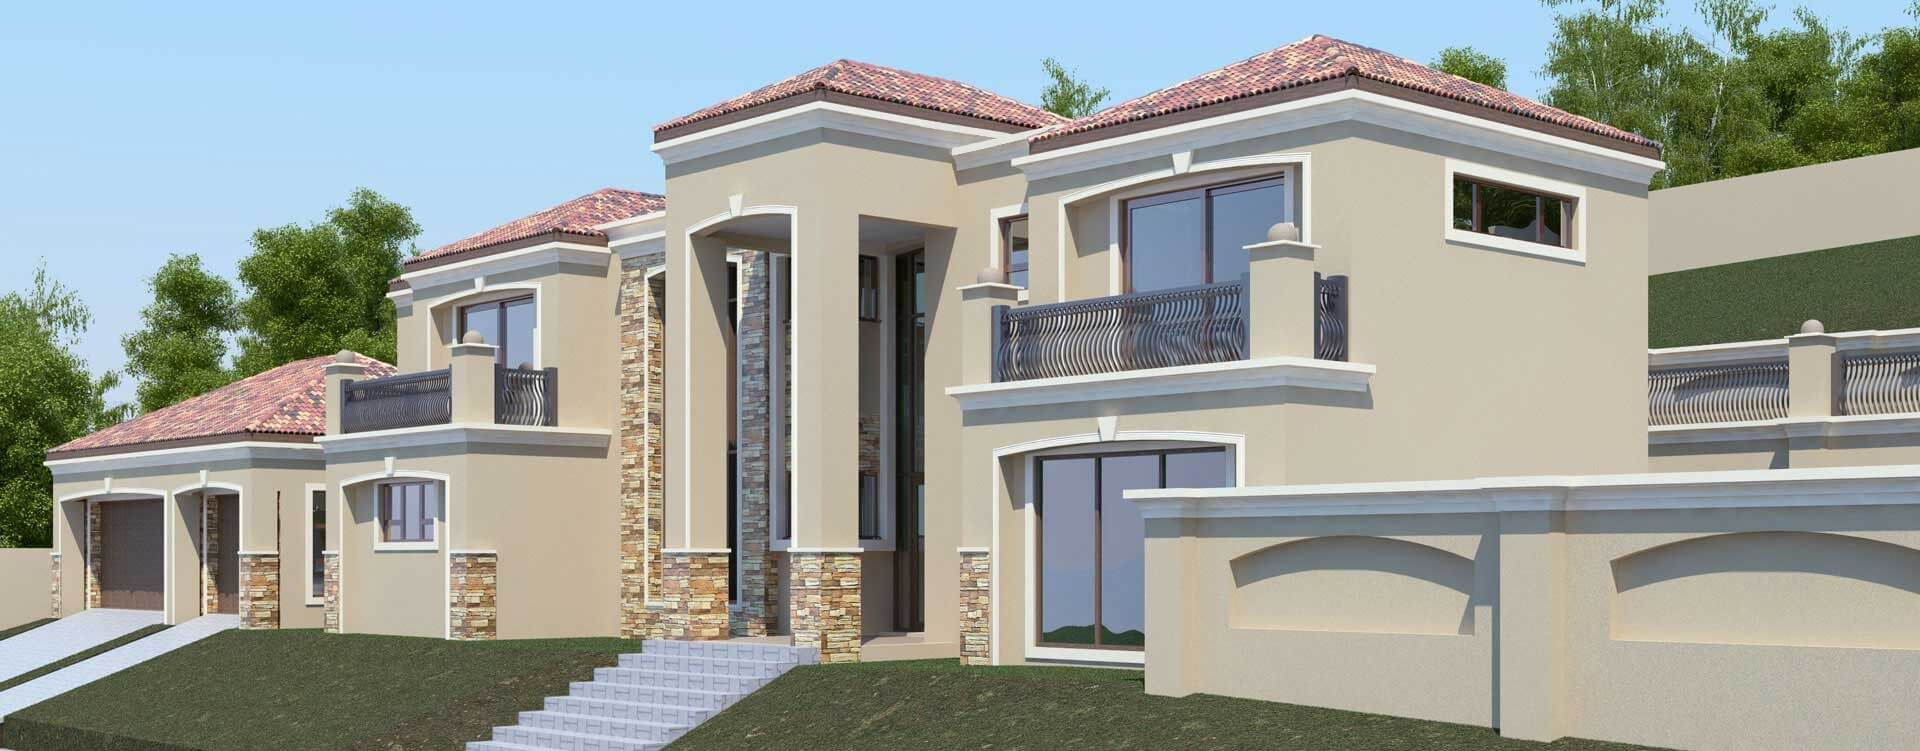 Nethouseplans affordable house plans for Architectural plans for homes